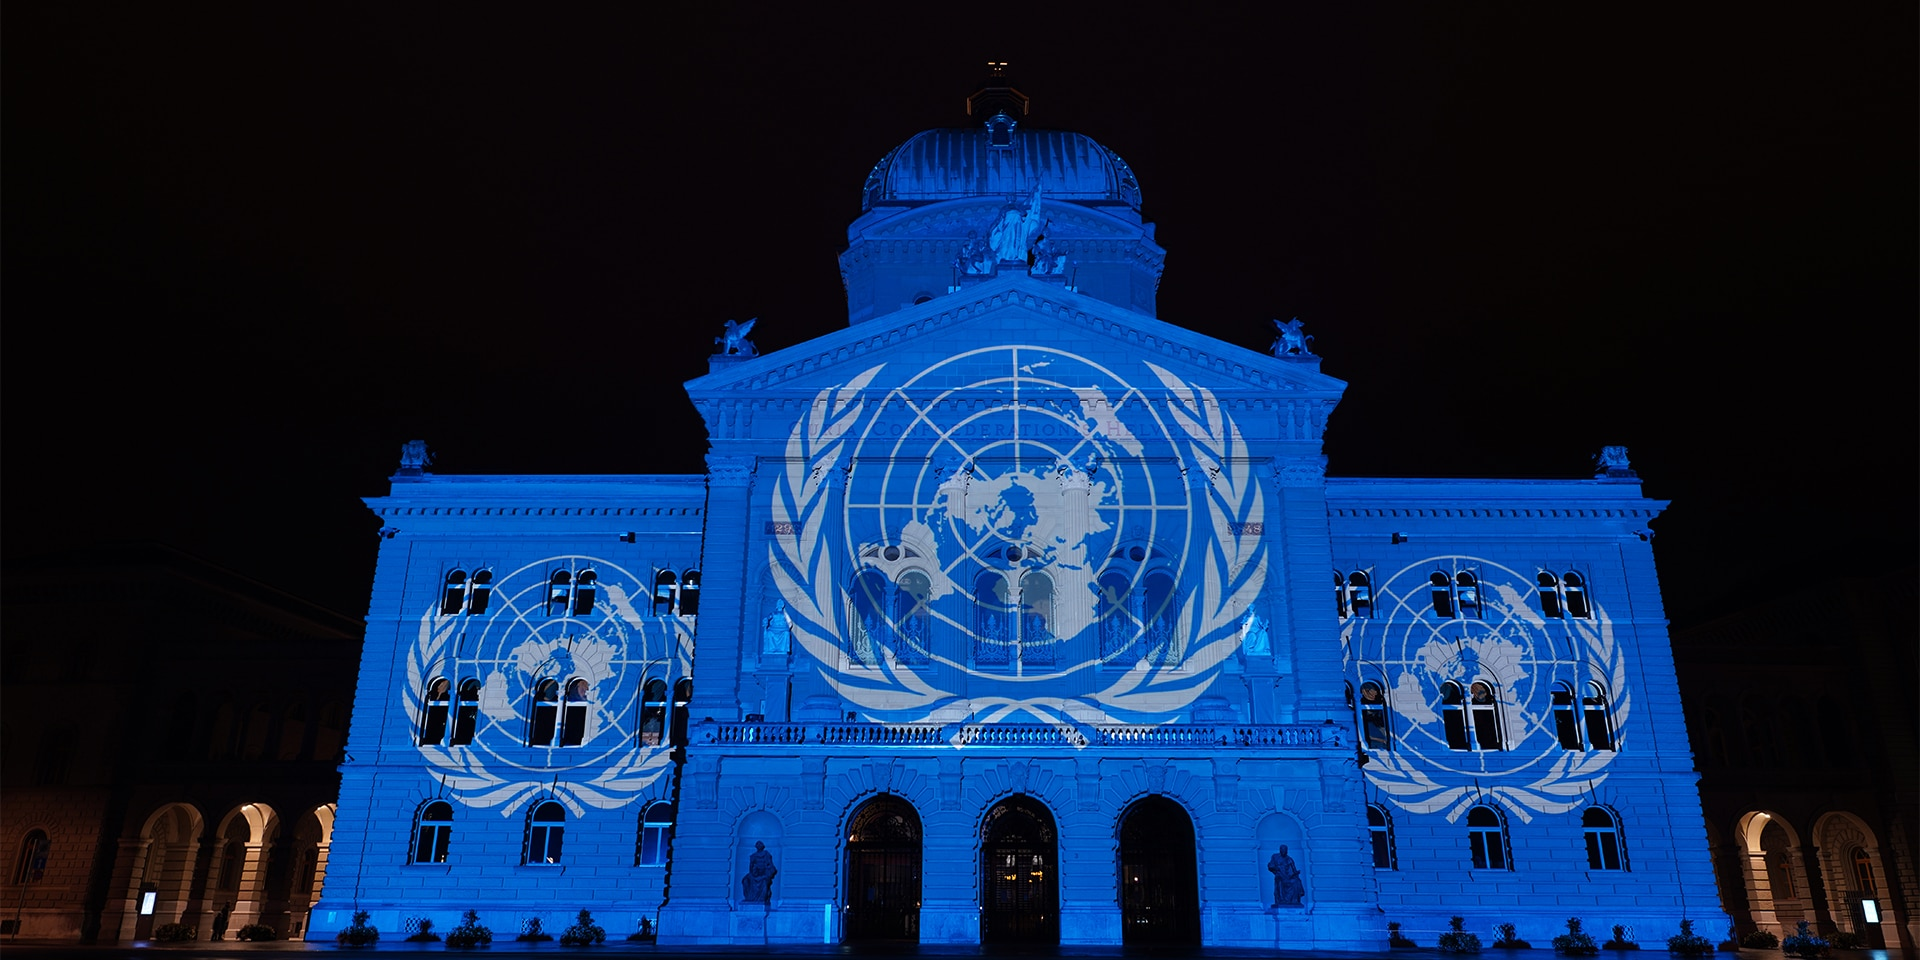 The United Nations flag is projected onto the front of the Federal Palace.